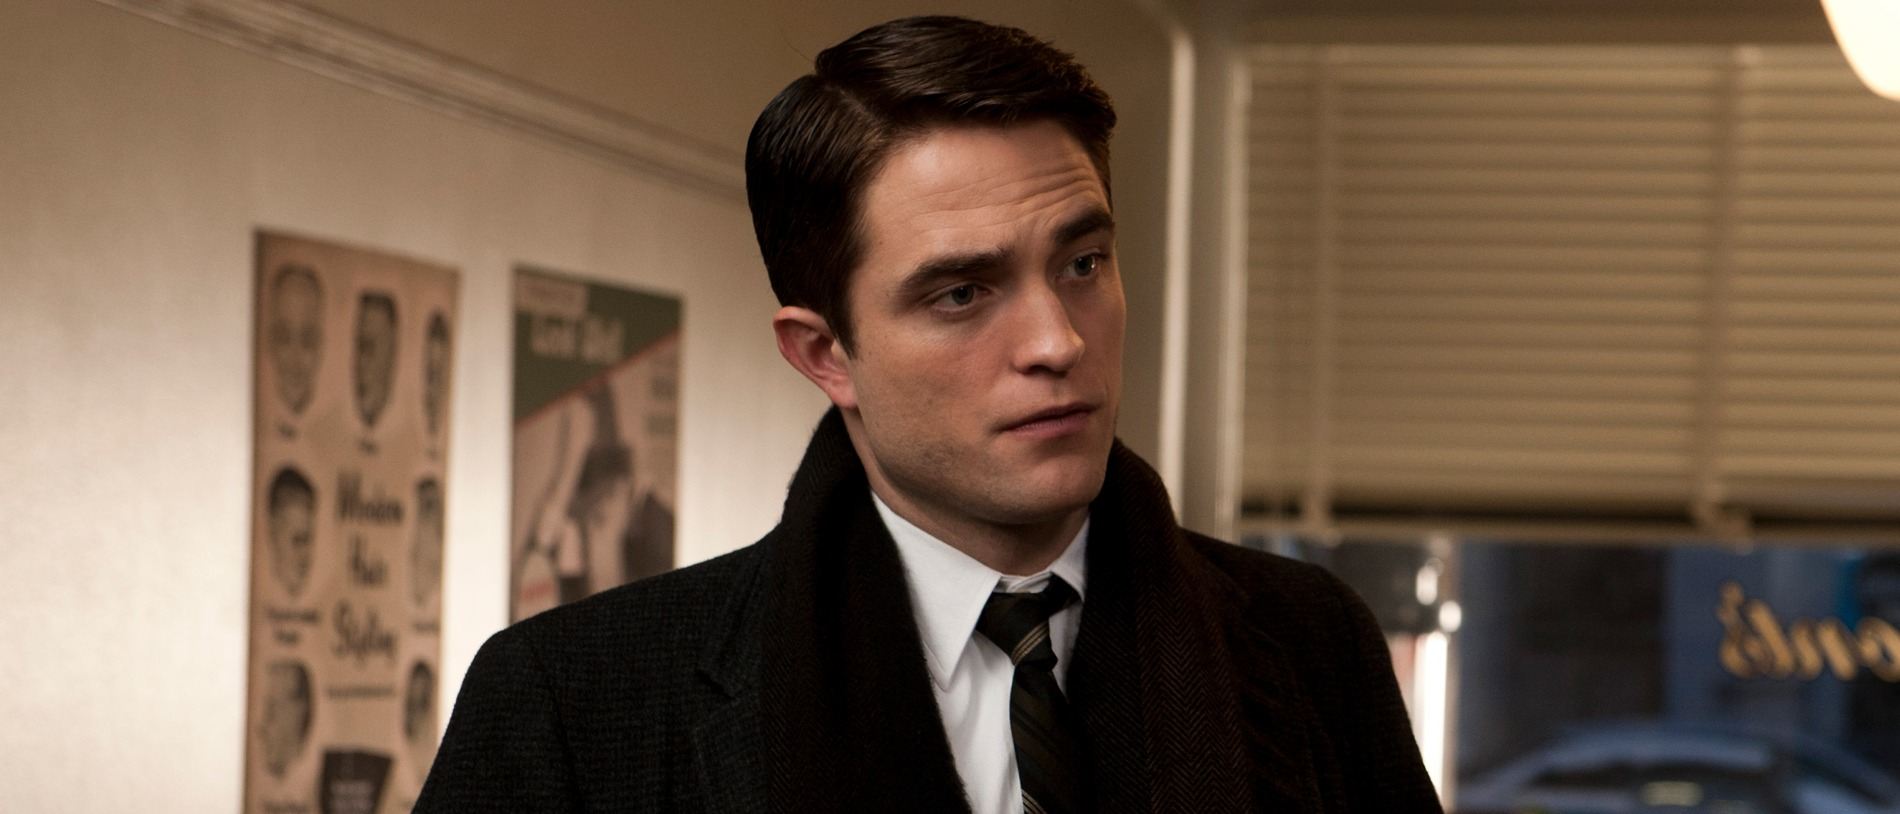 Robert Pattinson will be playing Batman in The Batman